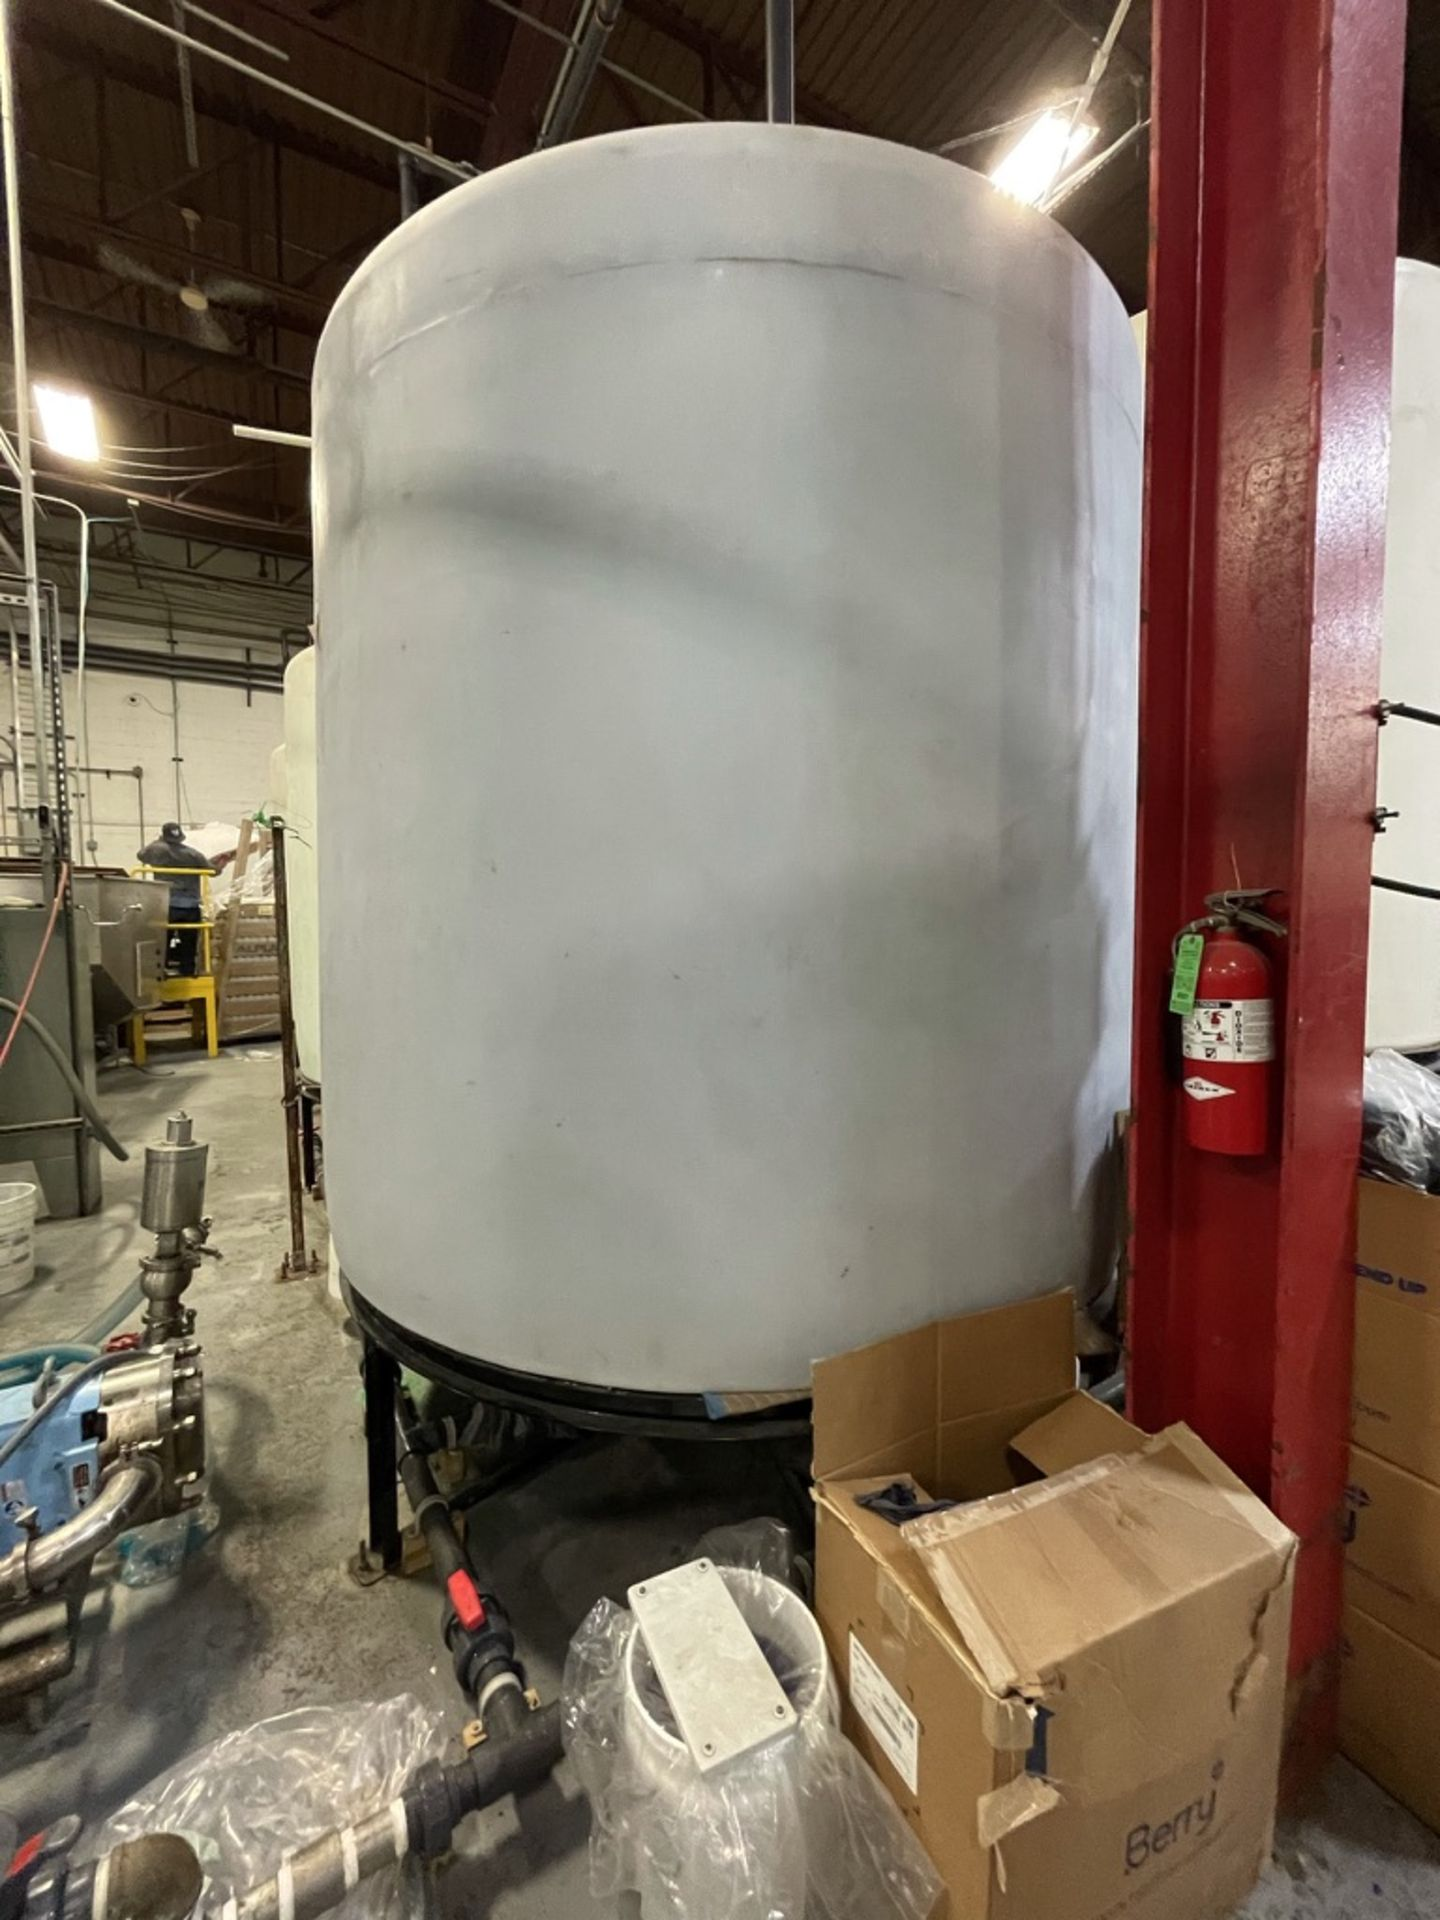 ACE ROTO-MOLD APPROX. 2,200 GALLON TANK WITH STEEL FRAME - Image 3 of 4